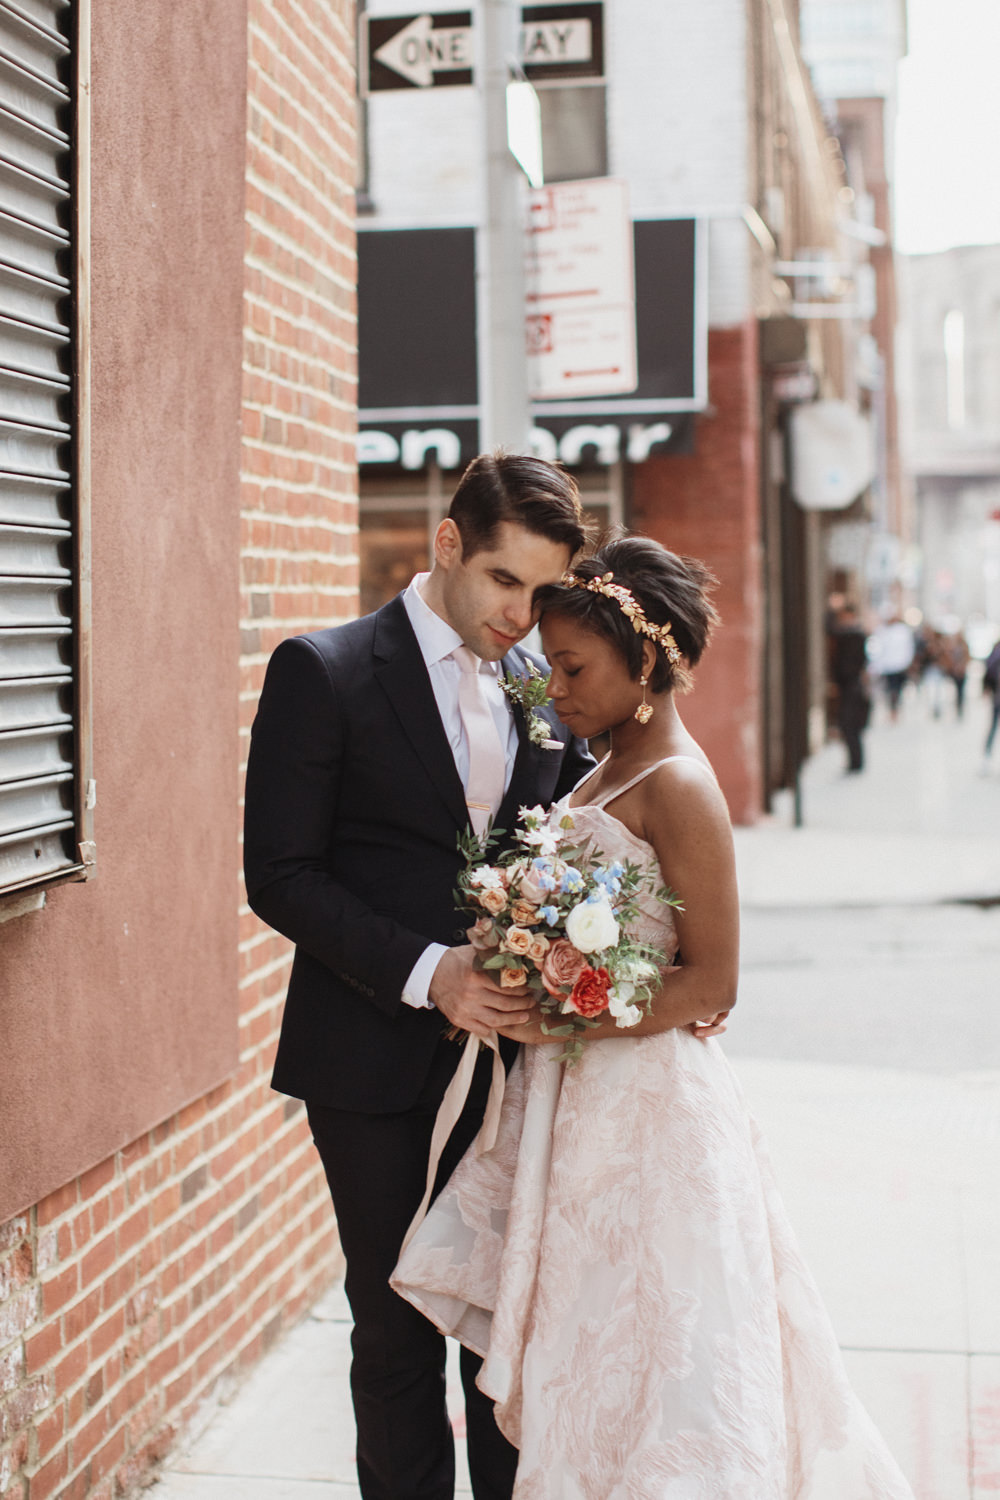 Couple poses for Wedding Photos by a brick wall in DUMBO Brooklyn